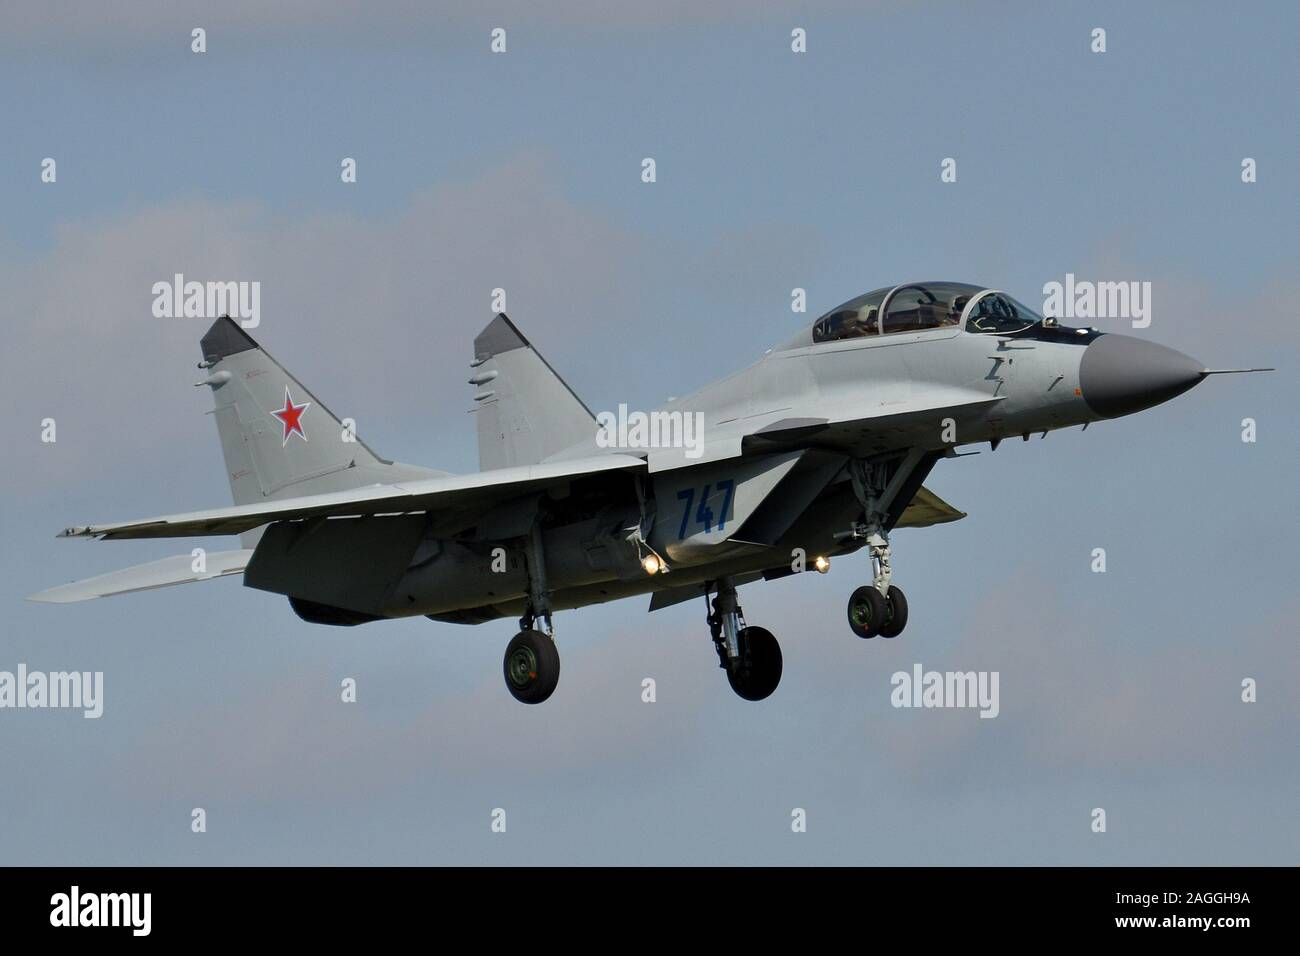 RUSSIAN AIR FORCE MIG-35UB FIGHTER AIRCRAFT. Stock Photo